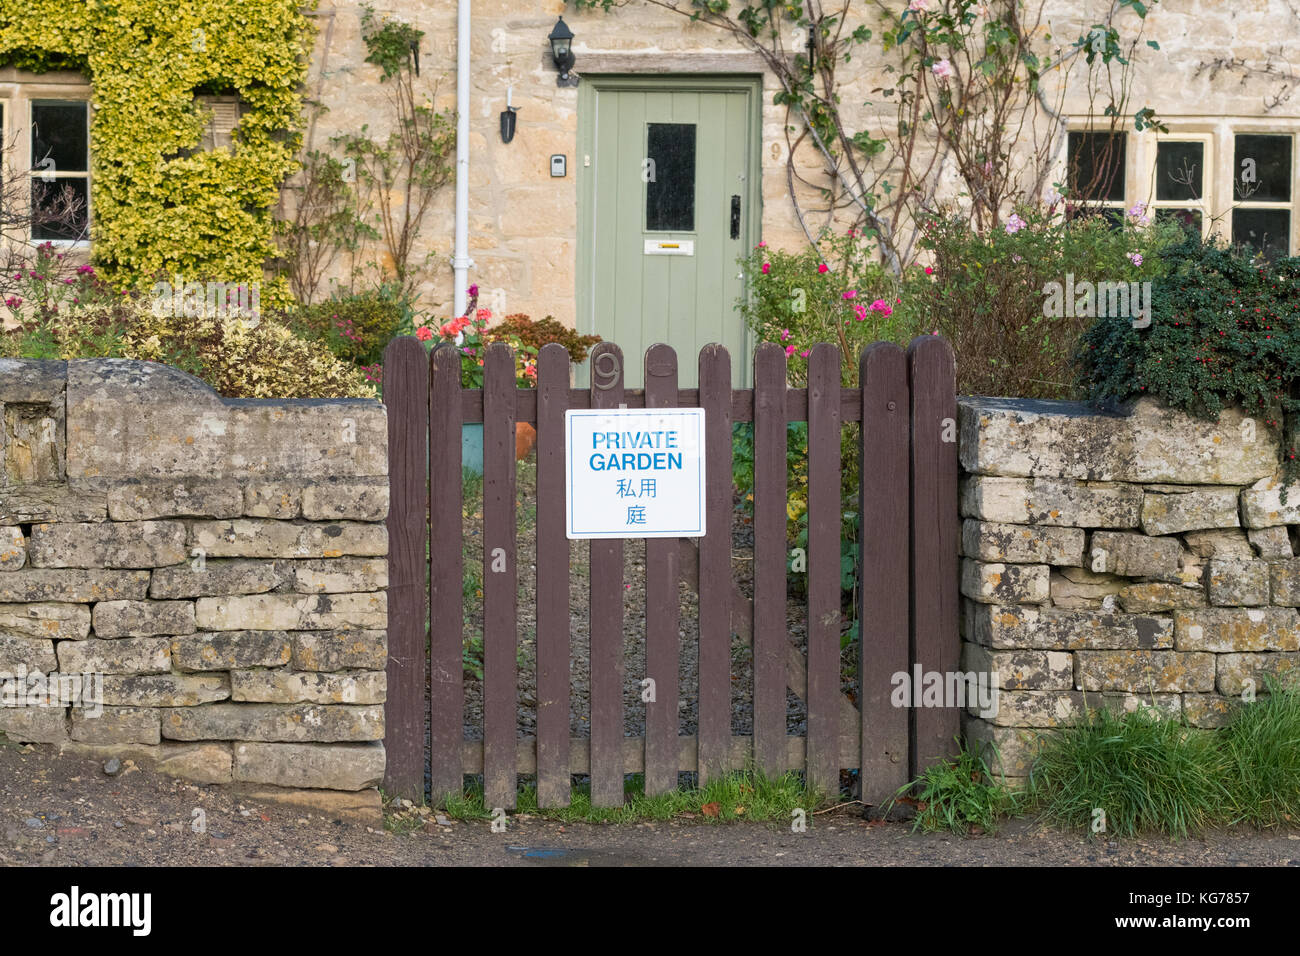 Bibury tourism - 'Private Garden' sign on garden gate written in English and Japanese - Bibury, Gloucestershire, - Stock Image